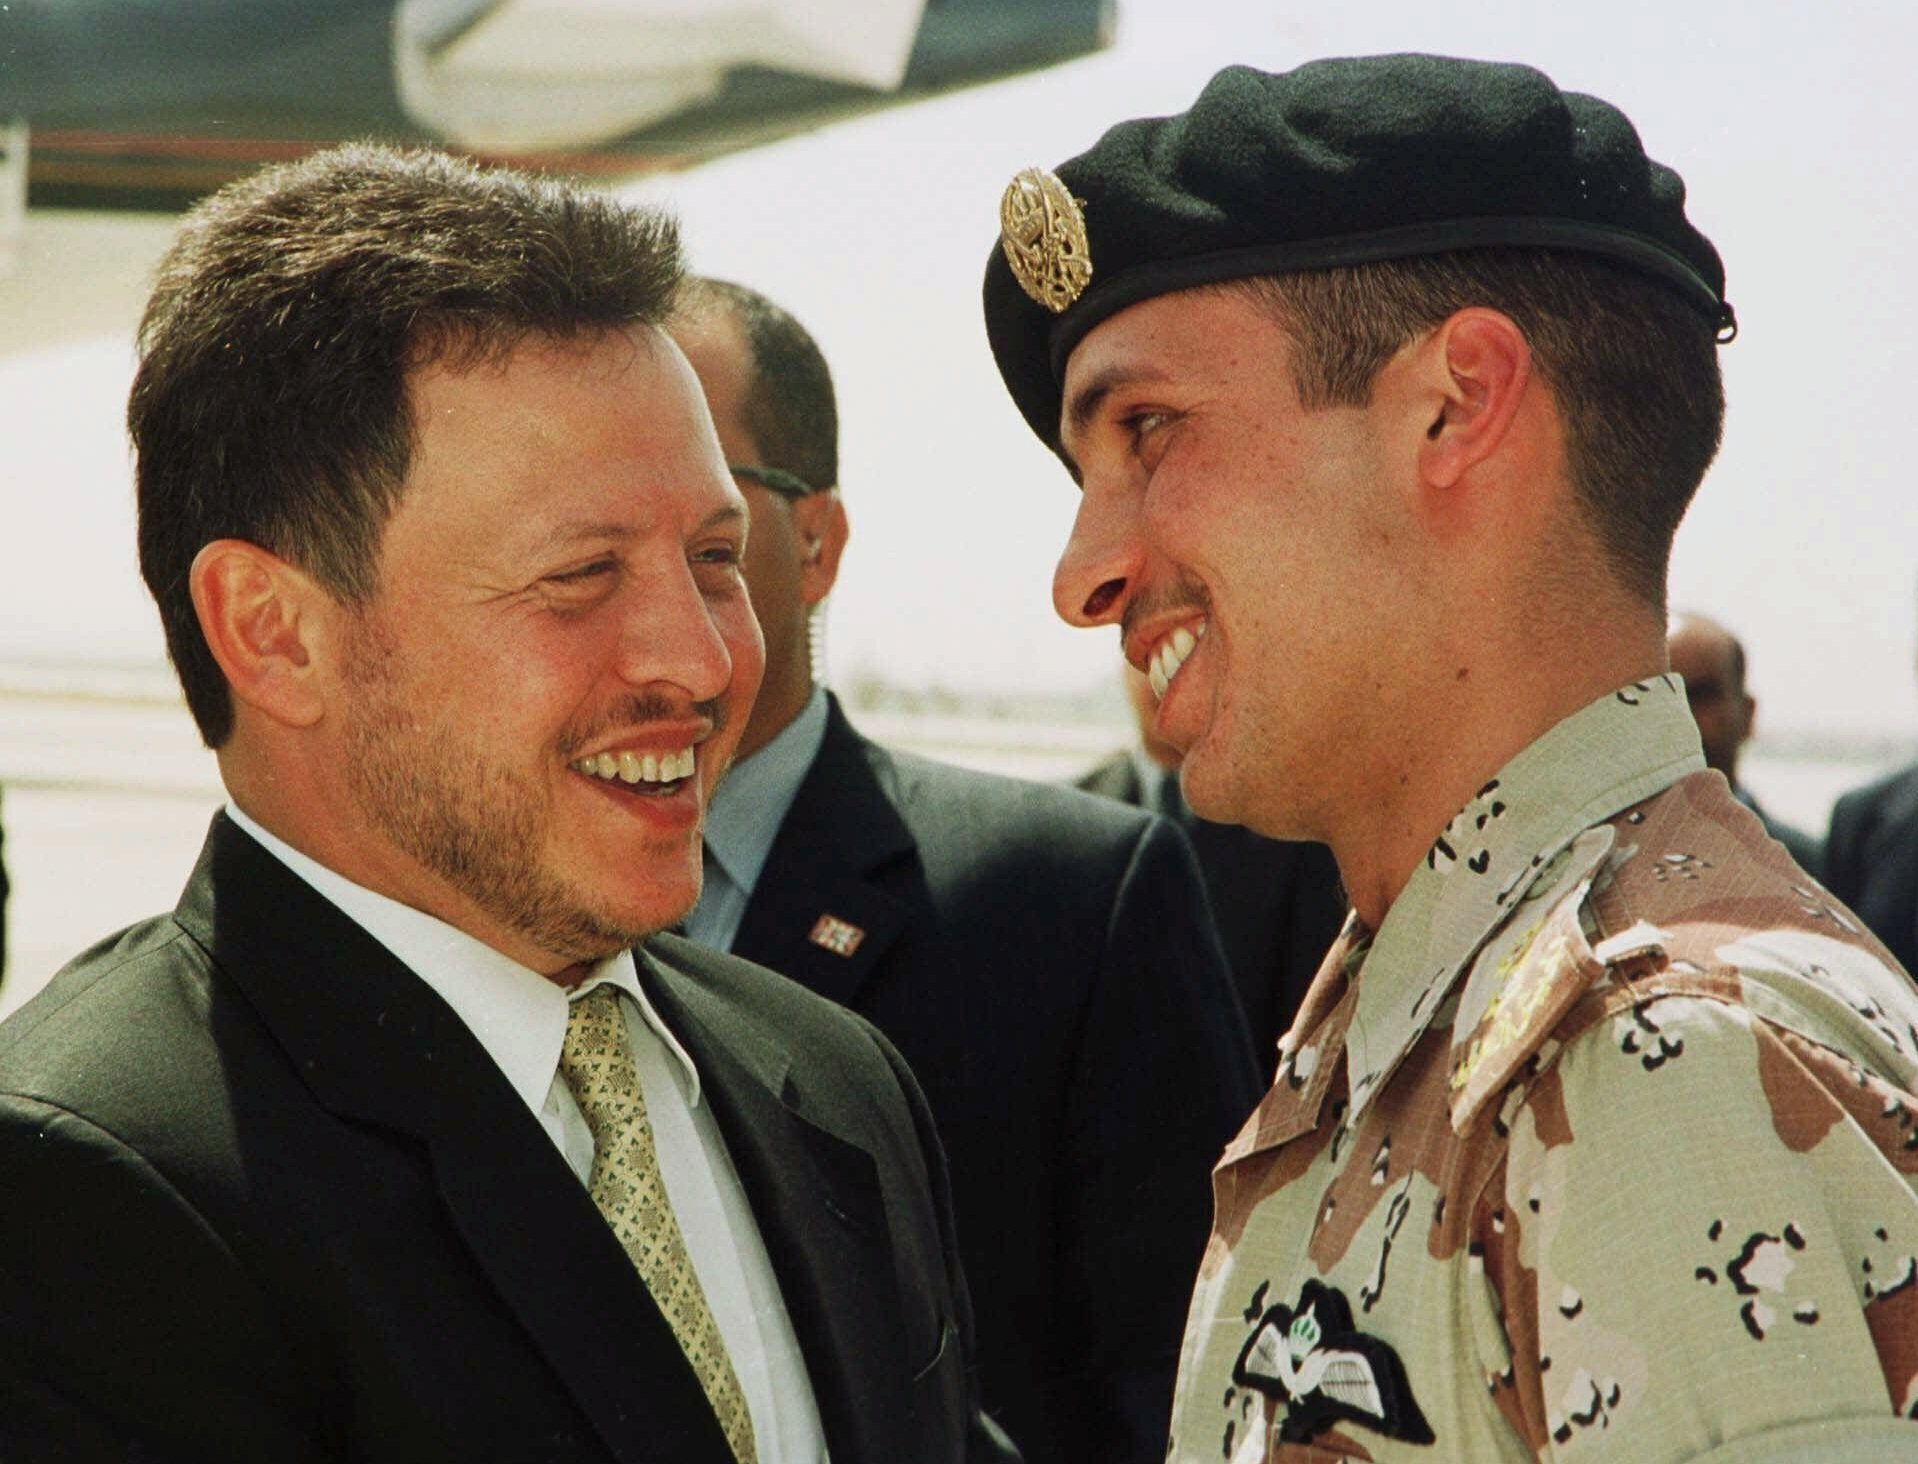 Jordan's King Abdullah II laughs with his half-brother Prince Hamzah (R) shortly before the monarch embarked on a tour of the United States, Jordan, April 2, 2001. (AP Photo)